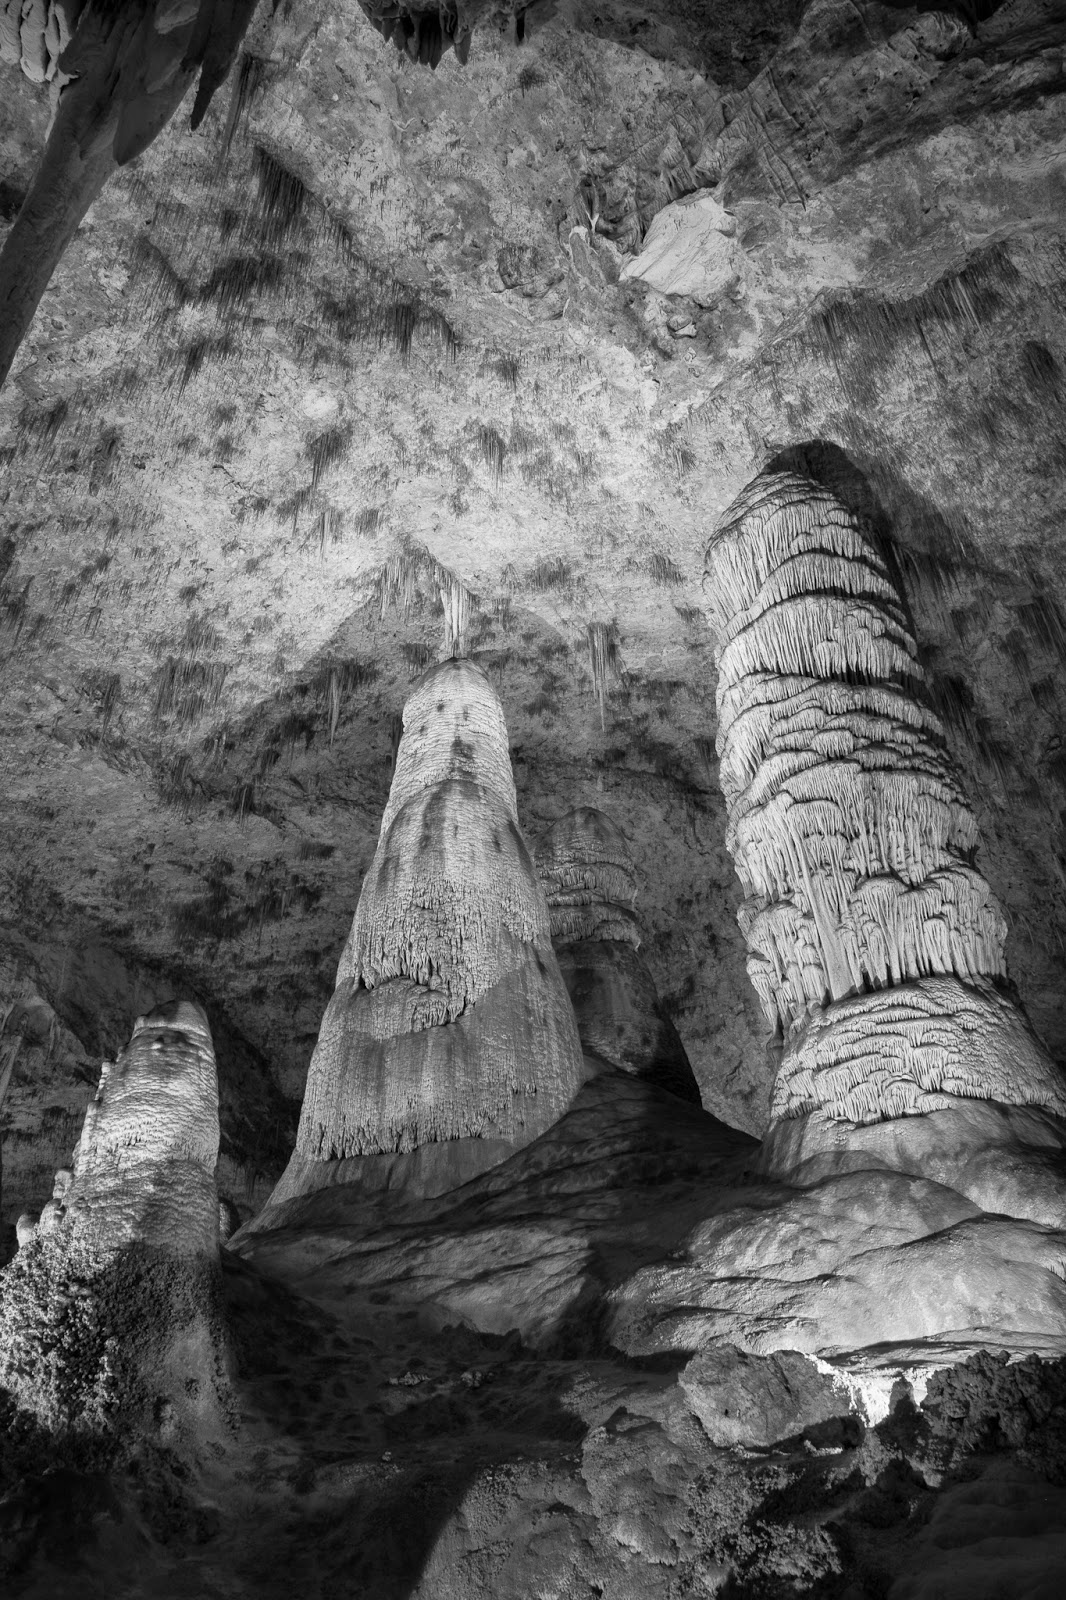 Carlsbad Caverns, The Hall of Giants